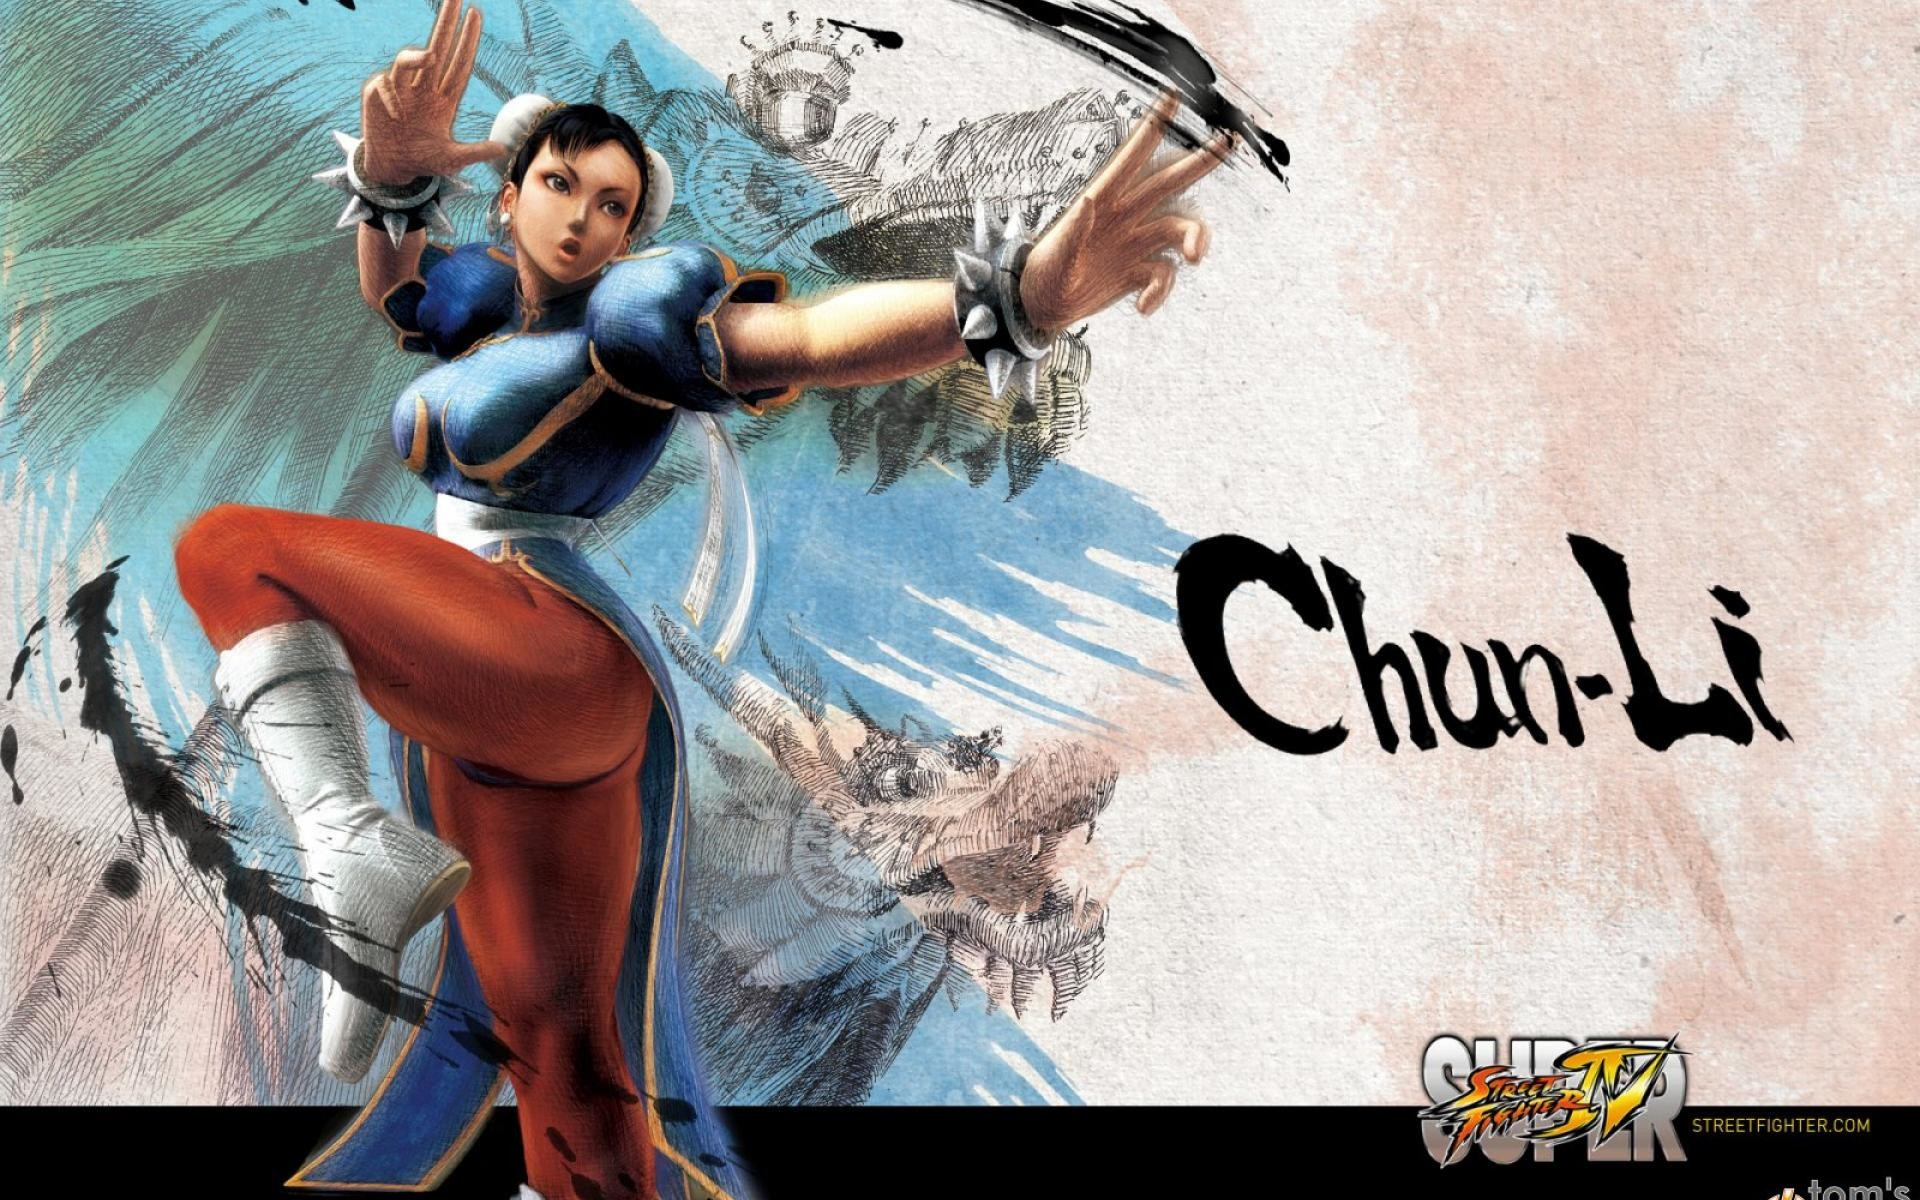 Super Street Fighter 4 Chun-Li Wallpaper